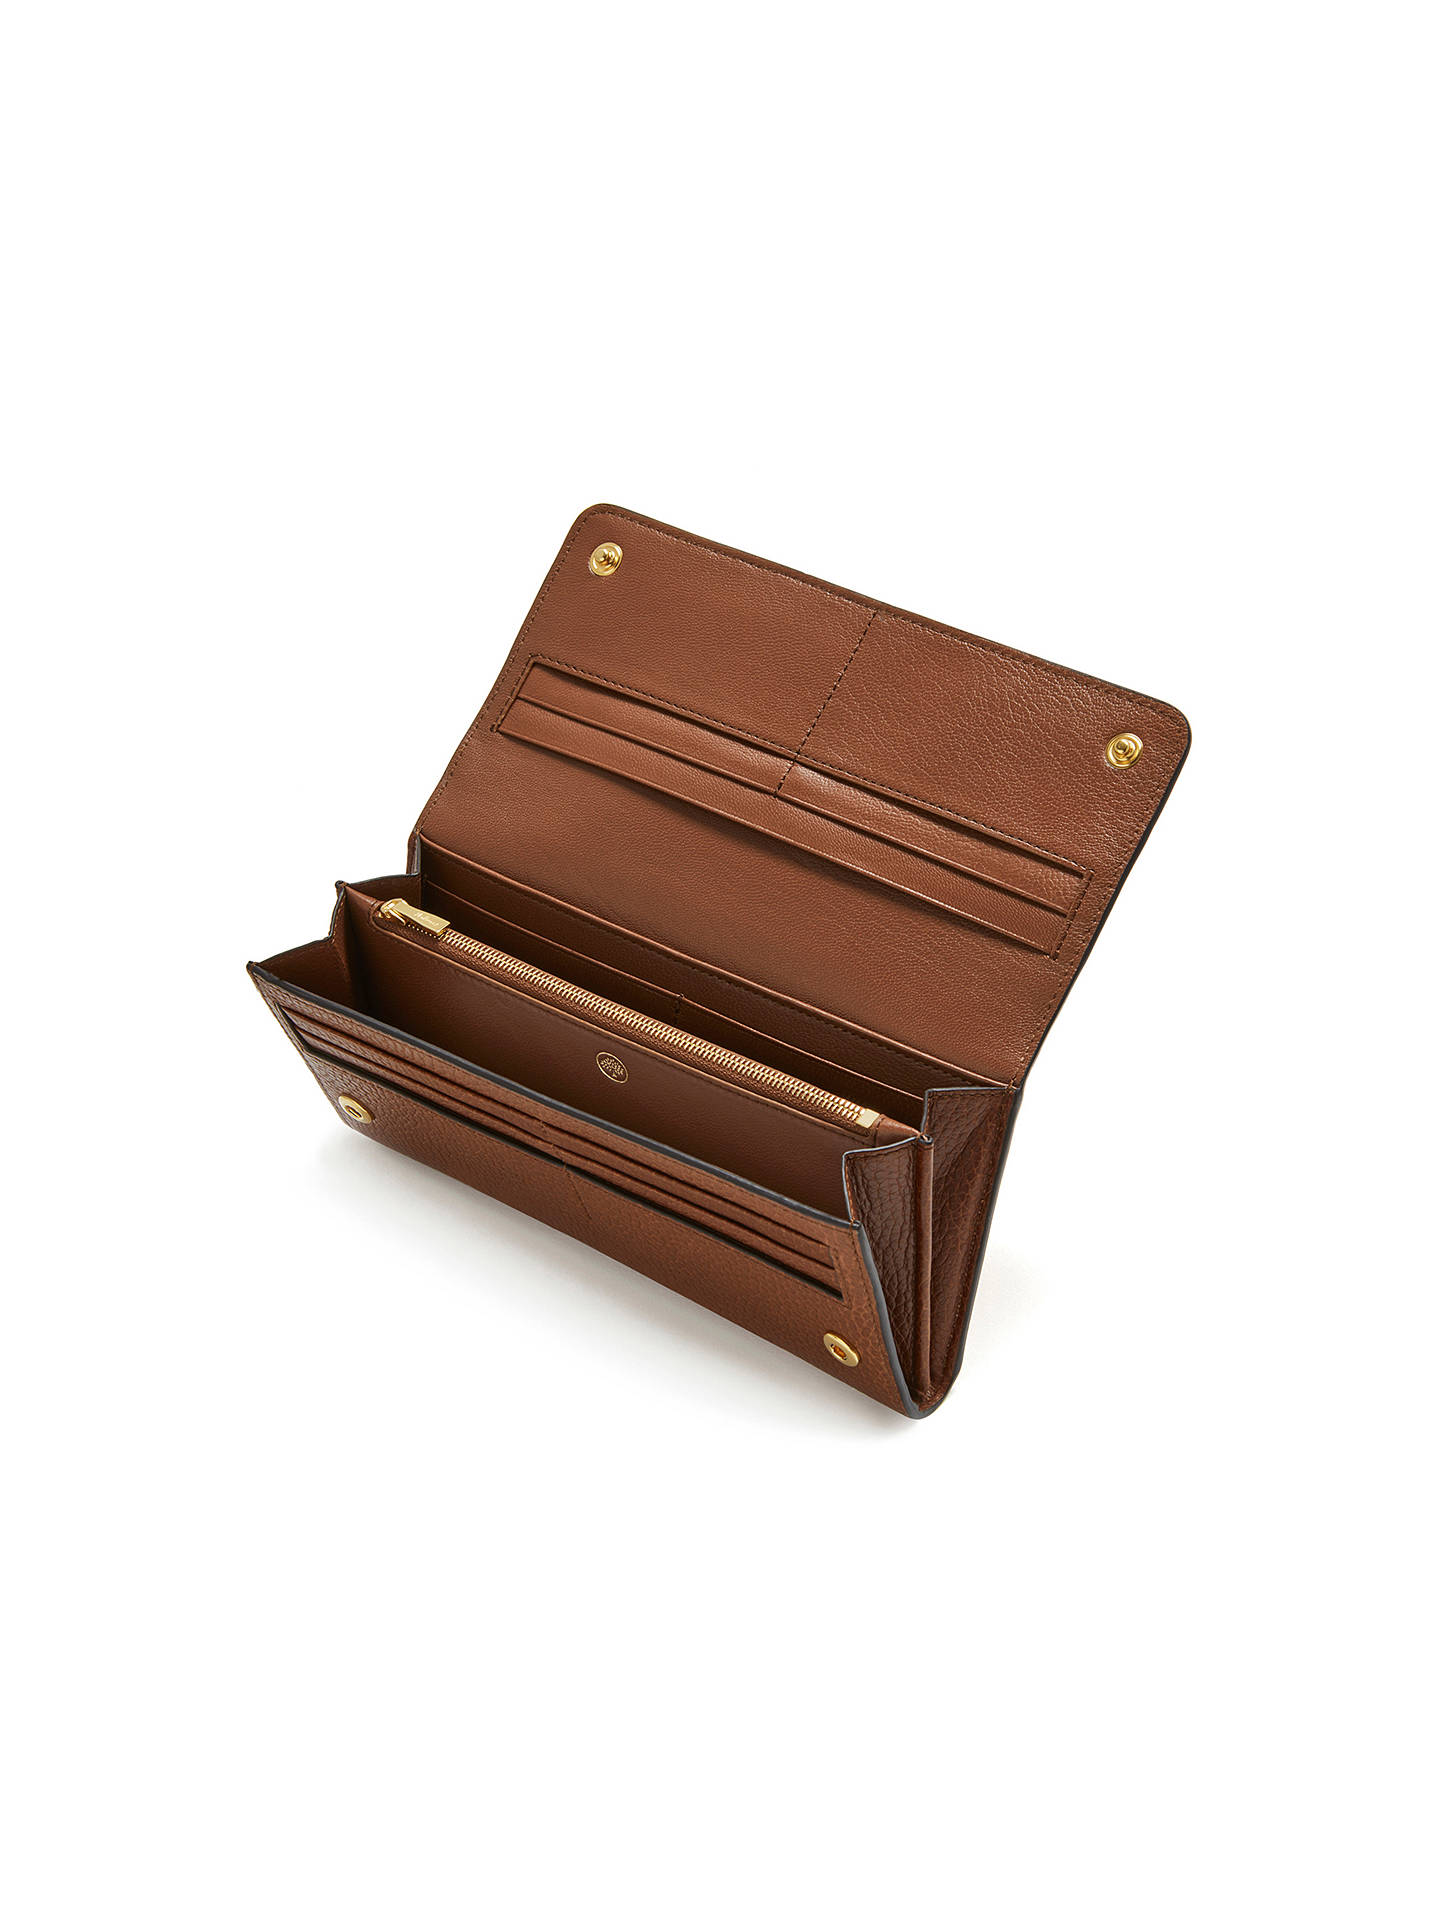 BuyMulberry Continental Leather Wallet, Oak Online at johnlewis.com